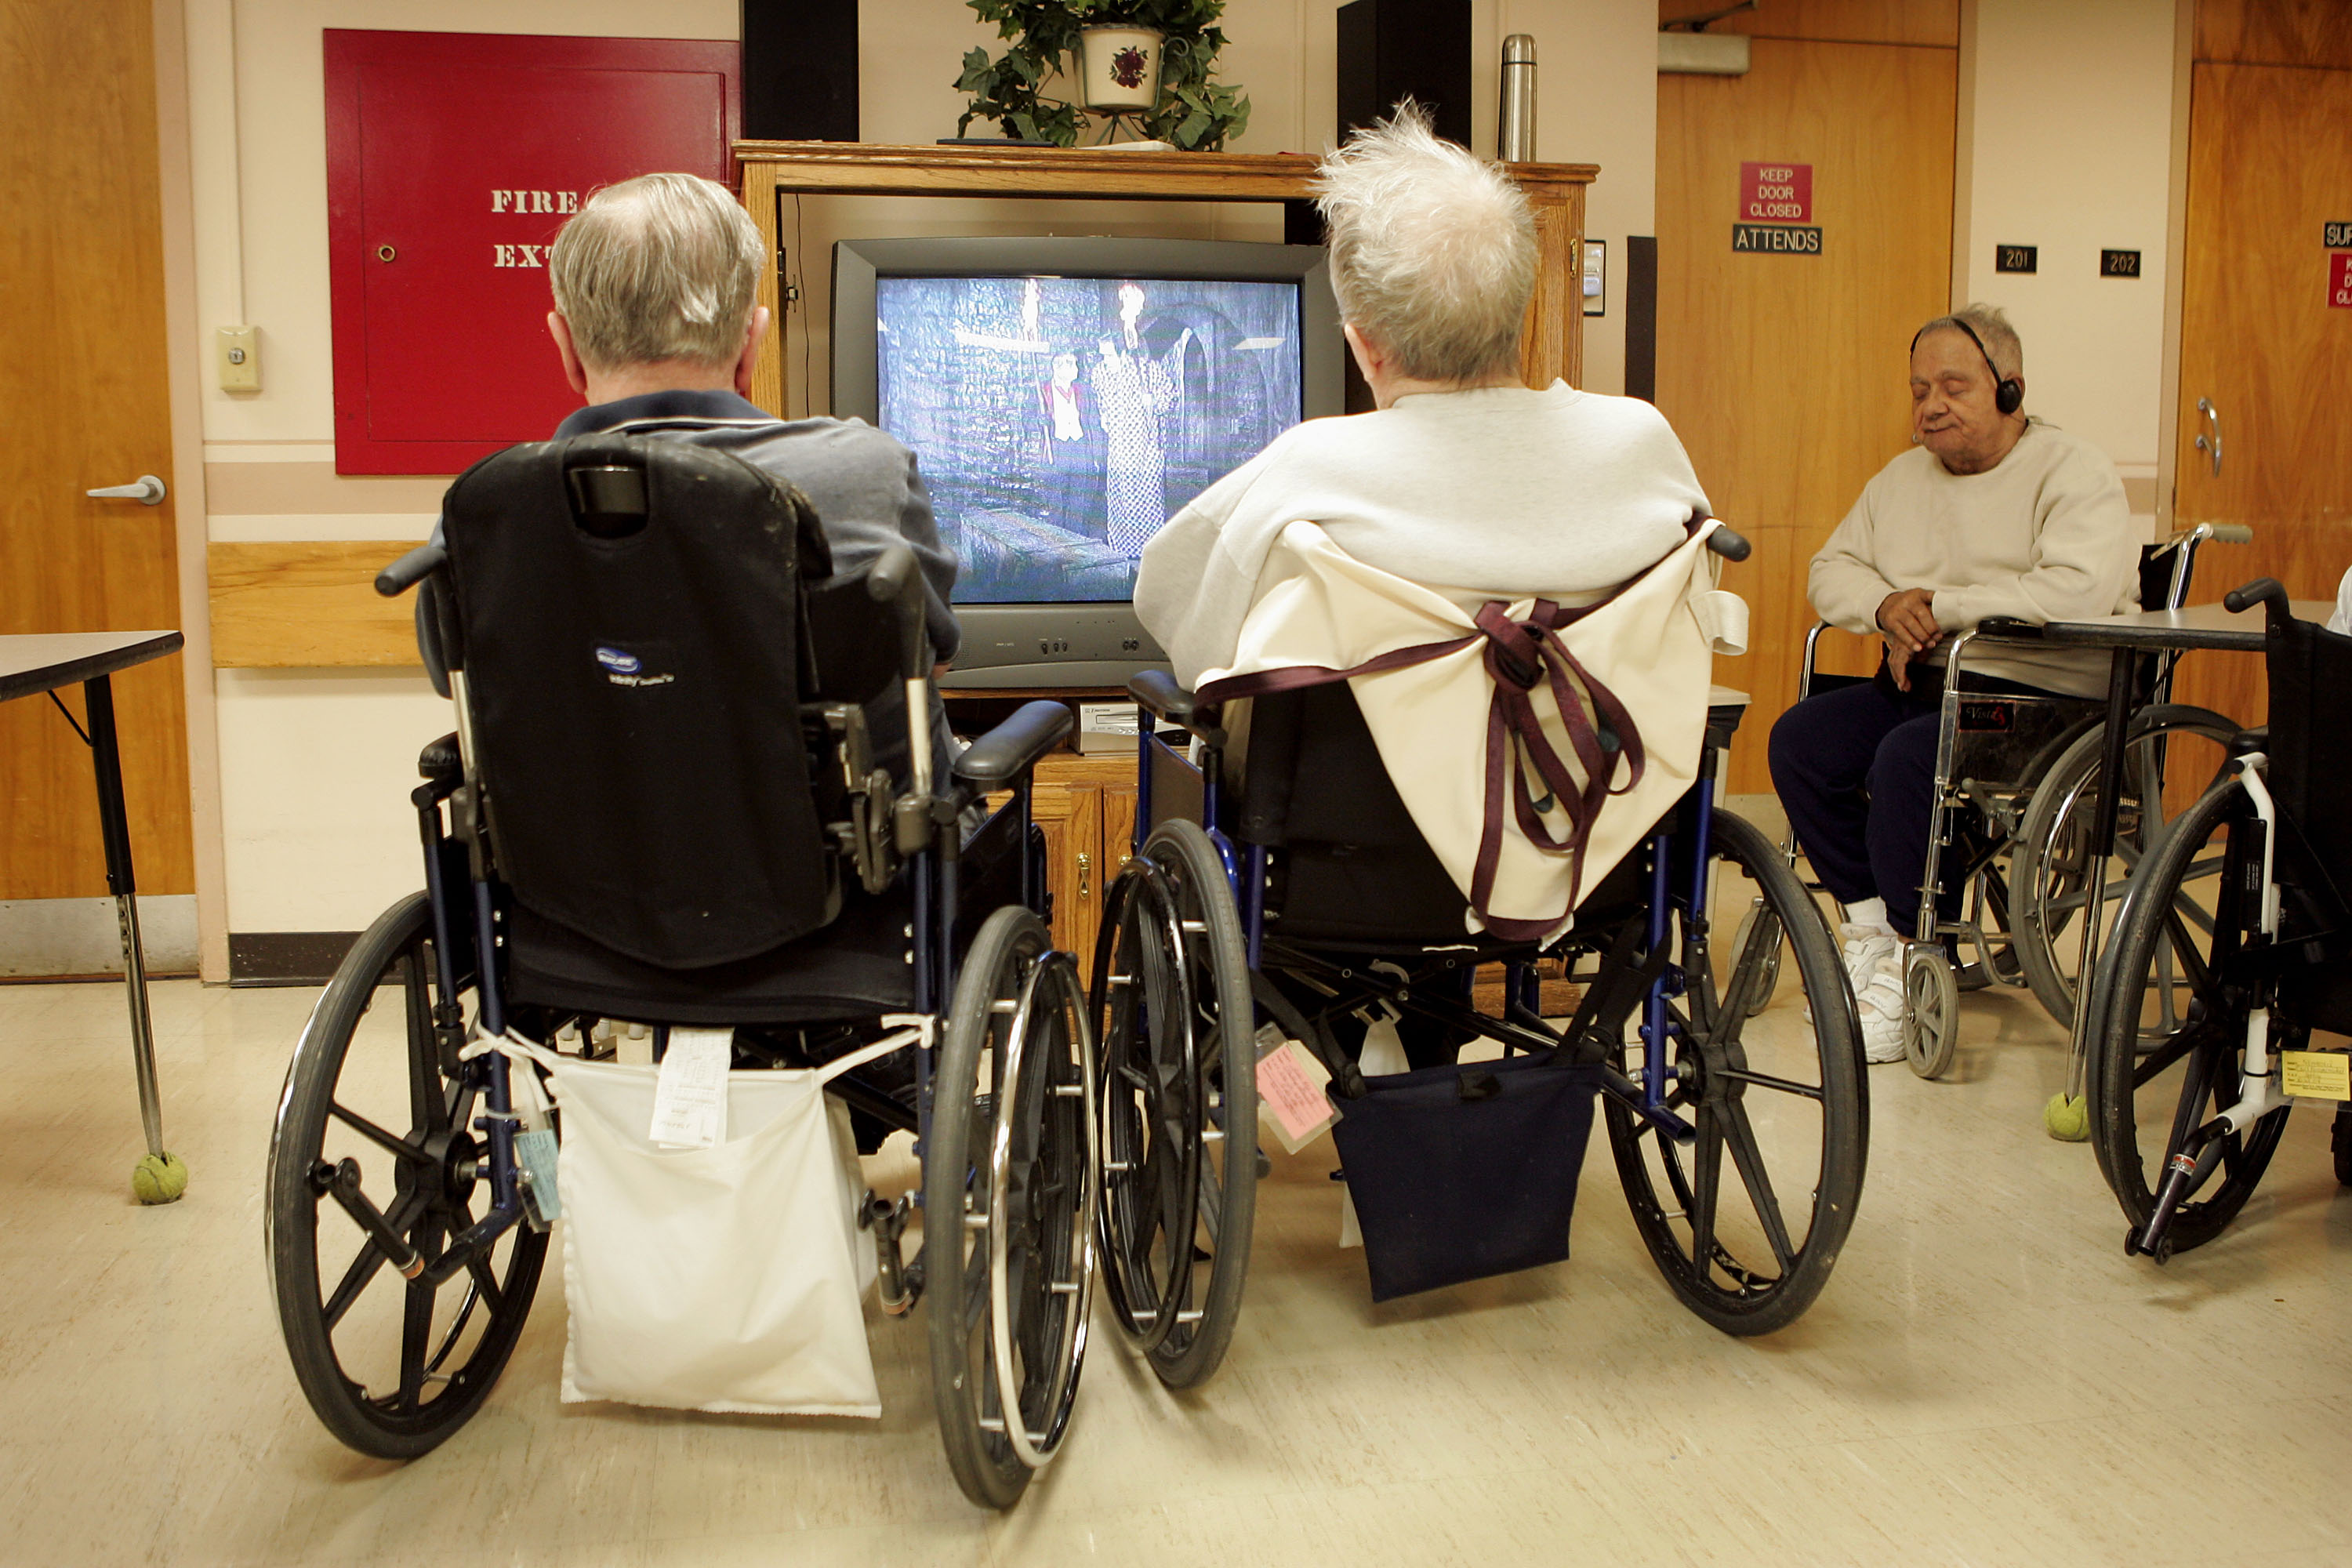 Nursing homes fade even as baby boomers age - STAT